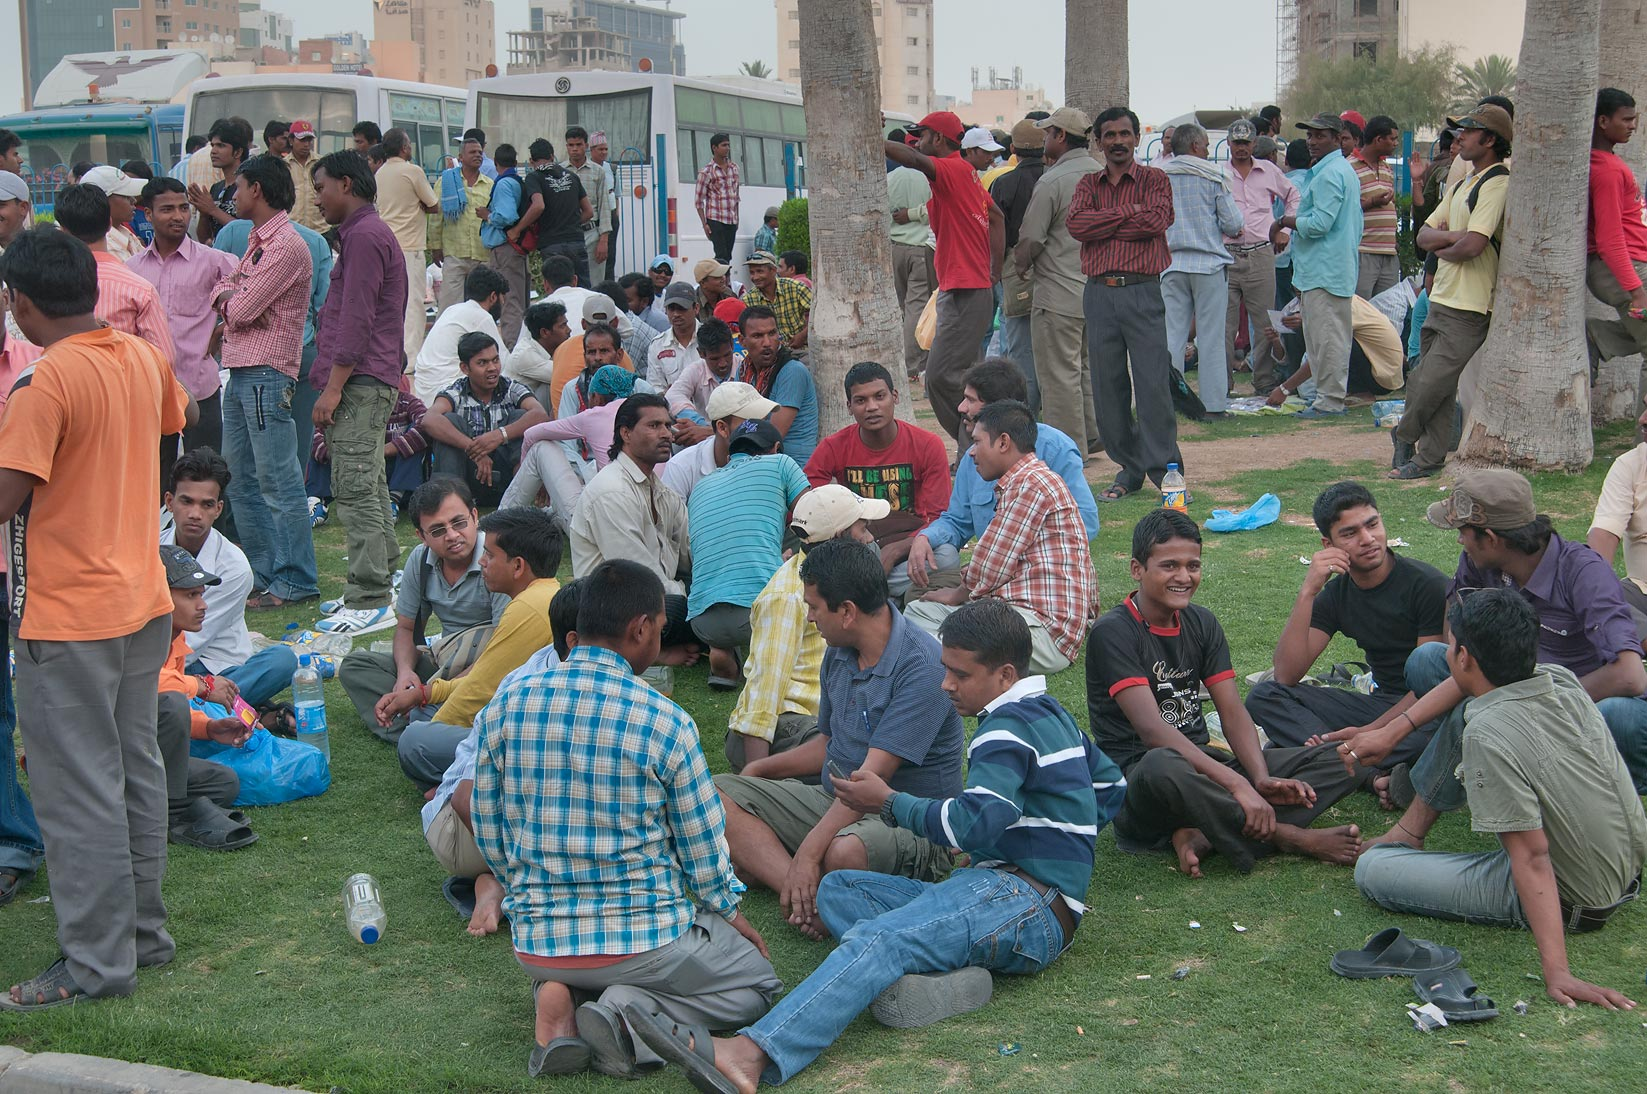 Migrant workers talking on a lawn at Central Bus Station Al Ghanim on Friday. Doha, Qatar